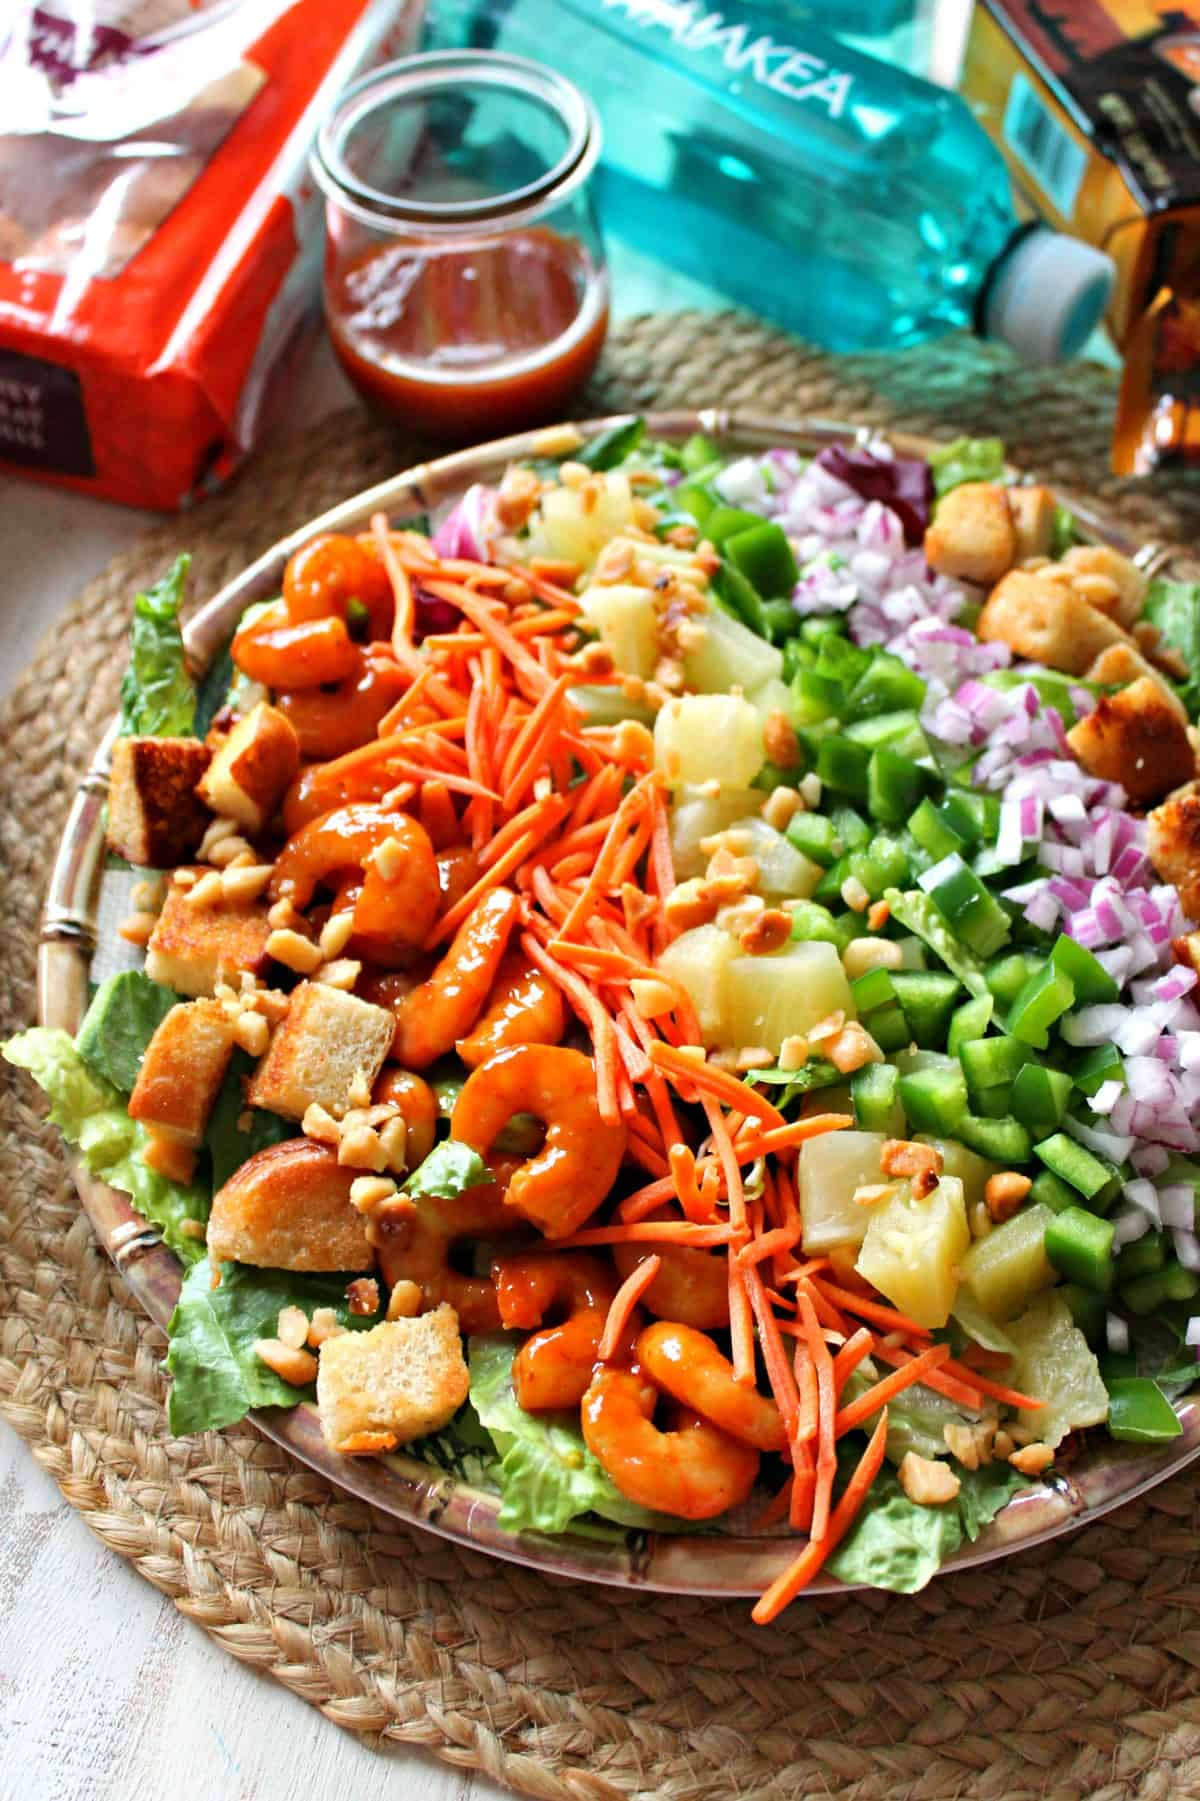 This colorful and fresh BBQ Shrimp Cobb Salad is a rainbow of vegetables and sweet Hawaiian chicken